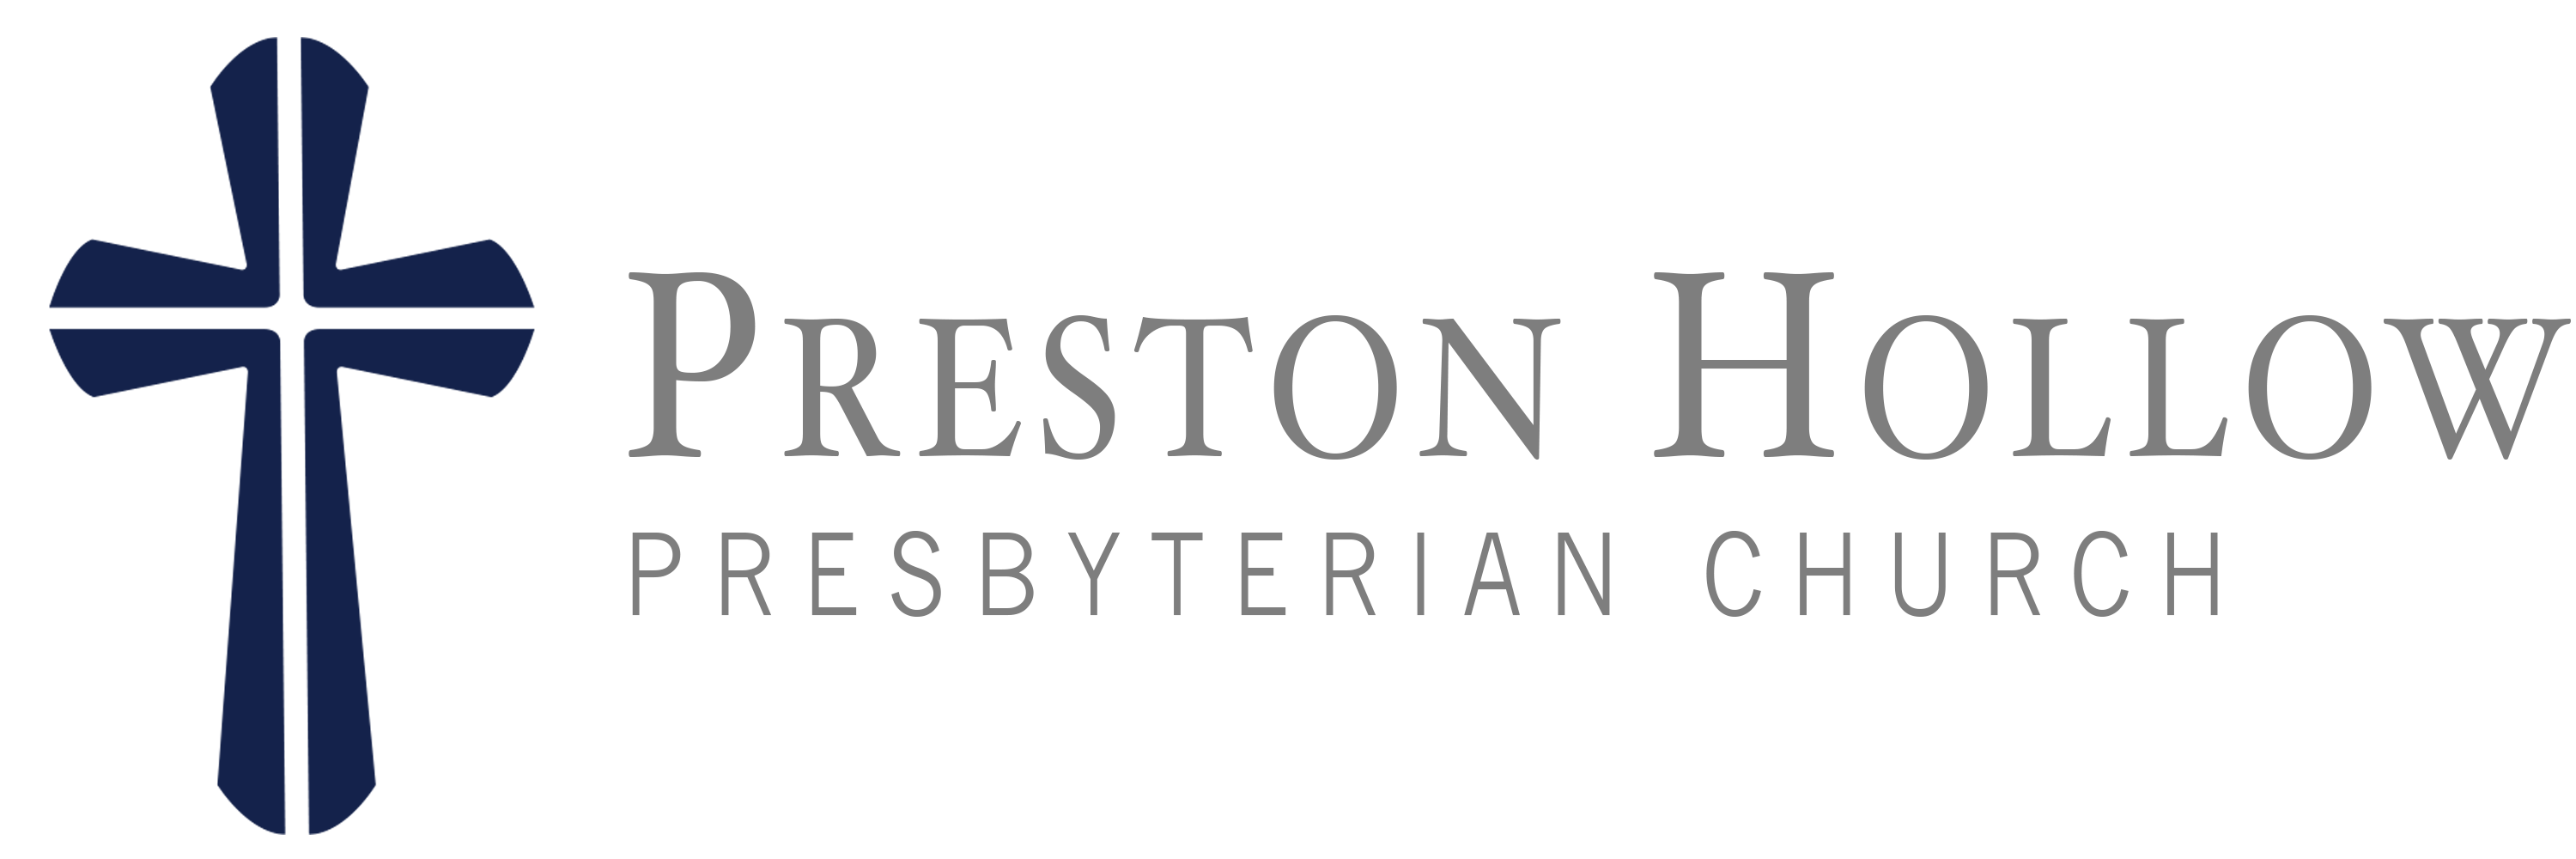 Preston Hollow Presbyterian Church